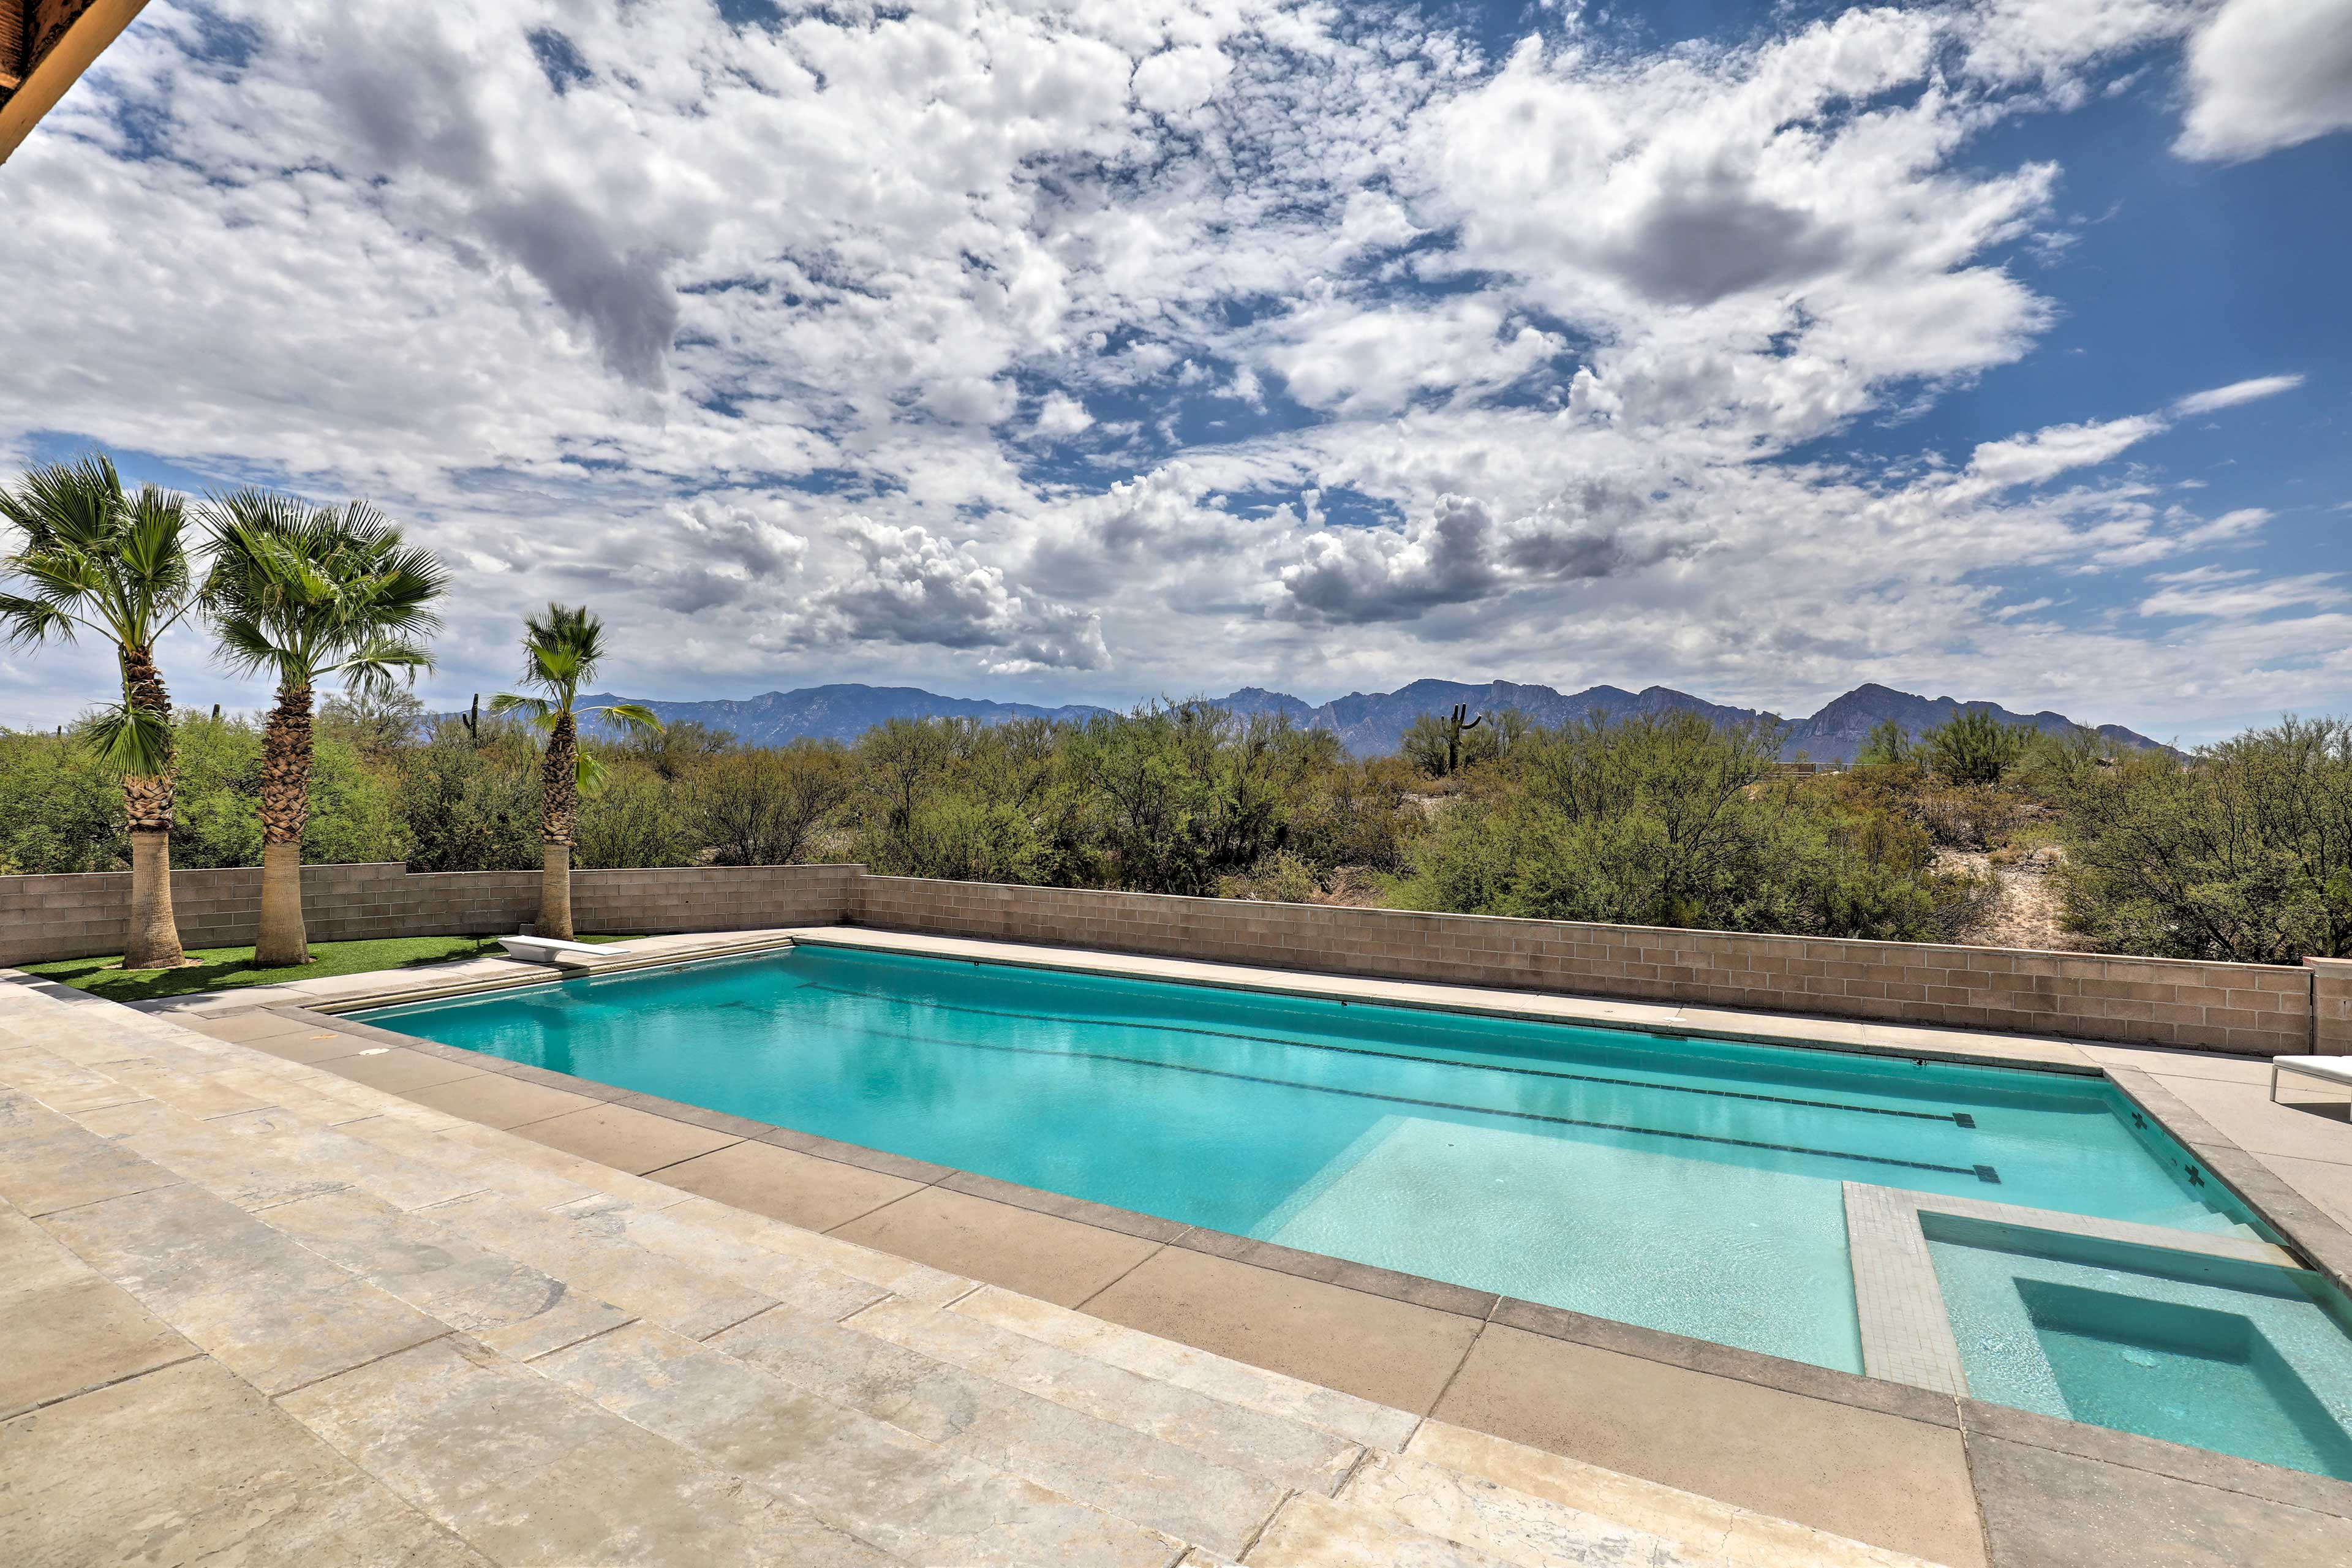 A pool with mountain views and privacy, the best.